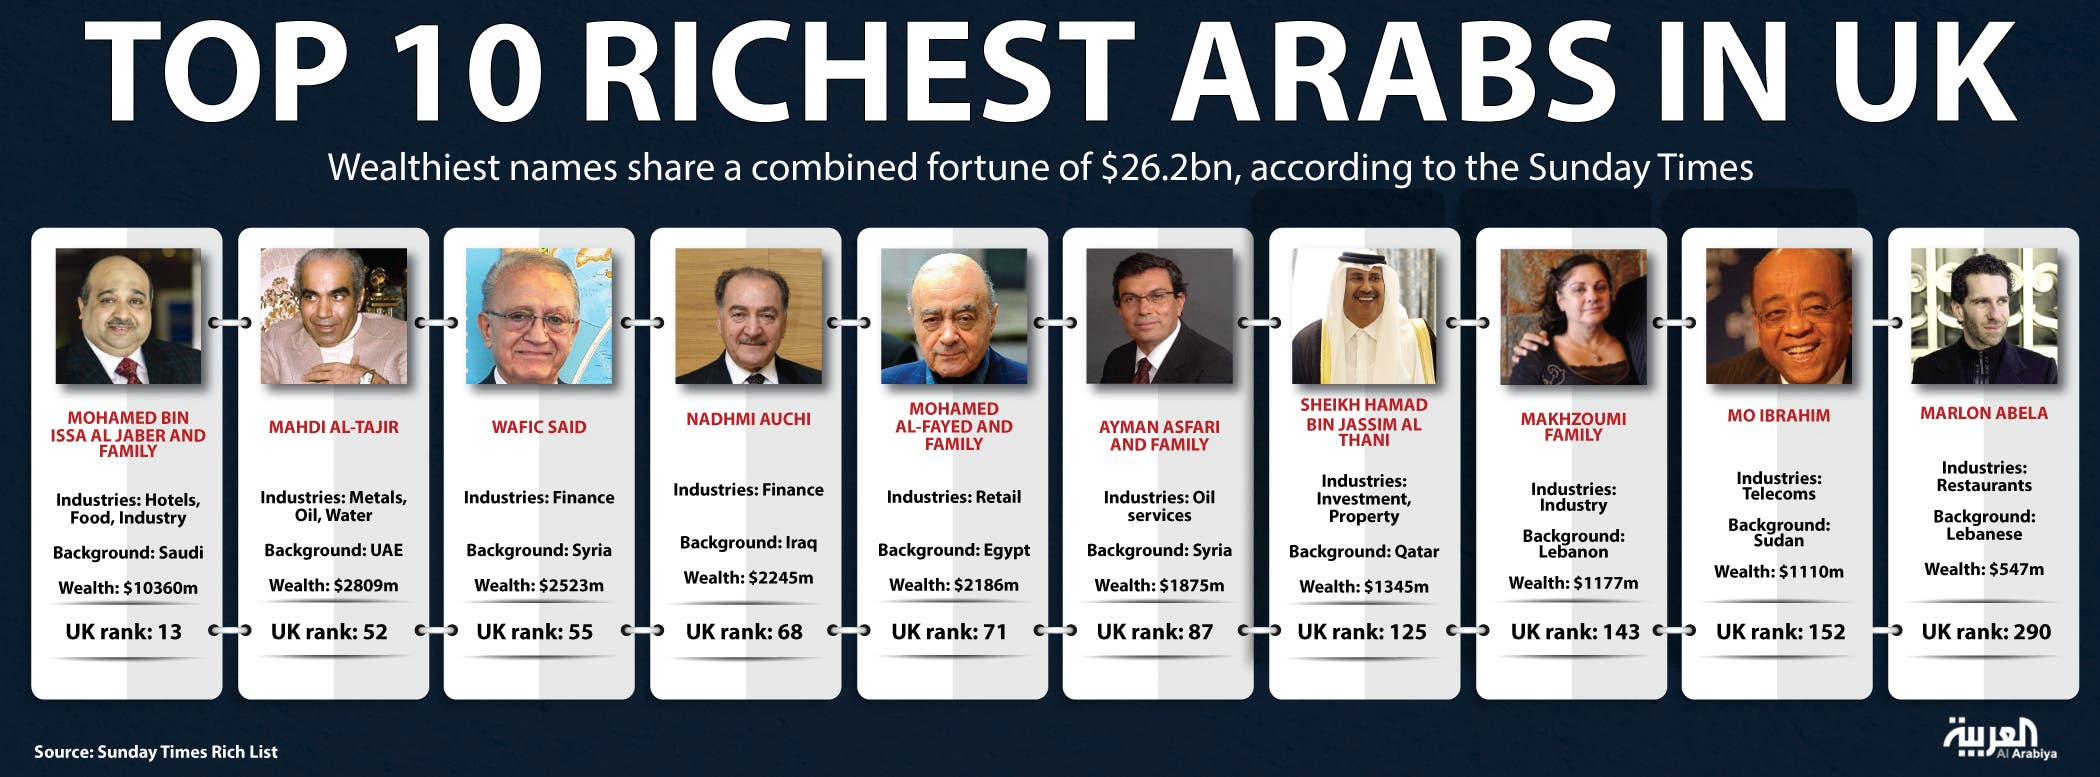 Infographic: Top 10 richest Arabs in UK